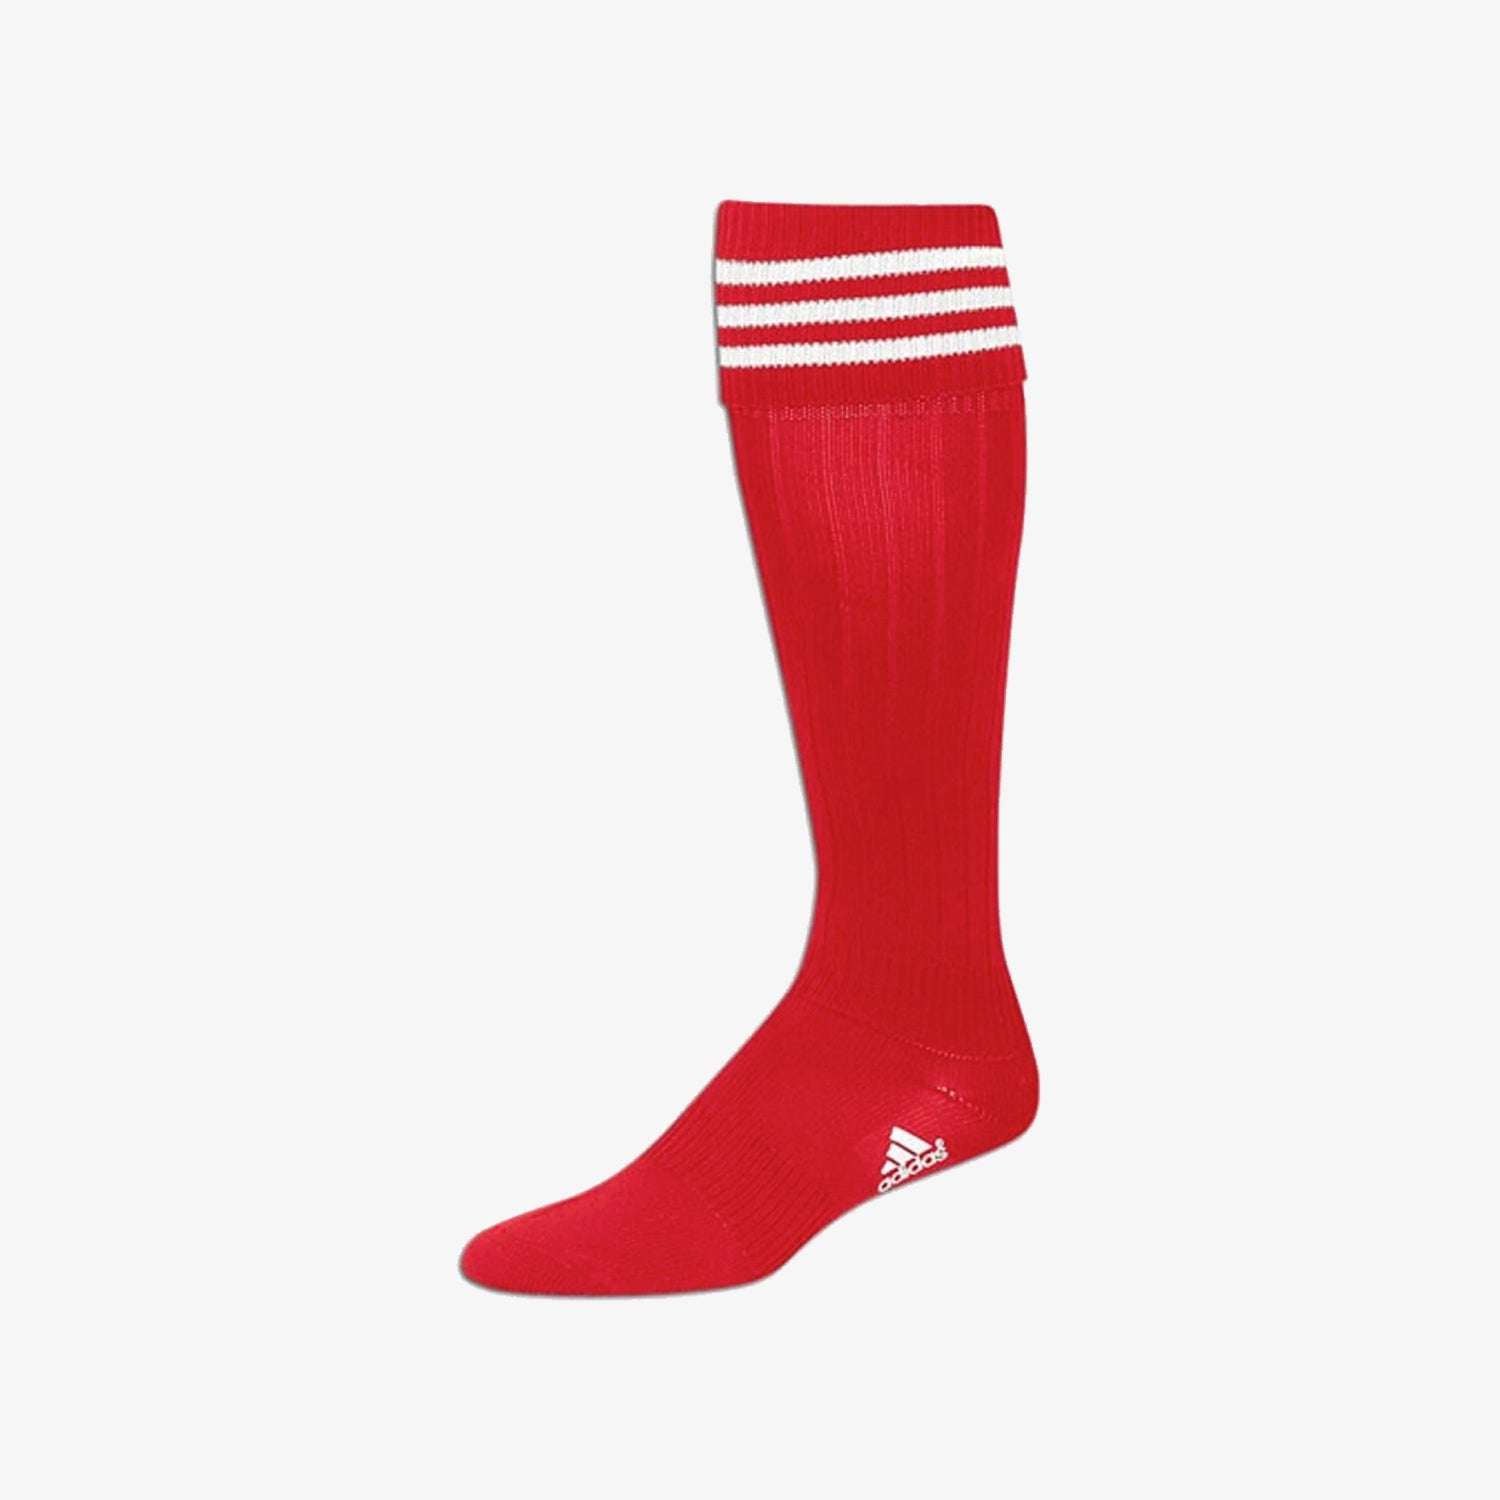 3-Stripe Soccer Sock Red - XSmall